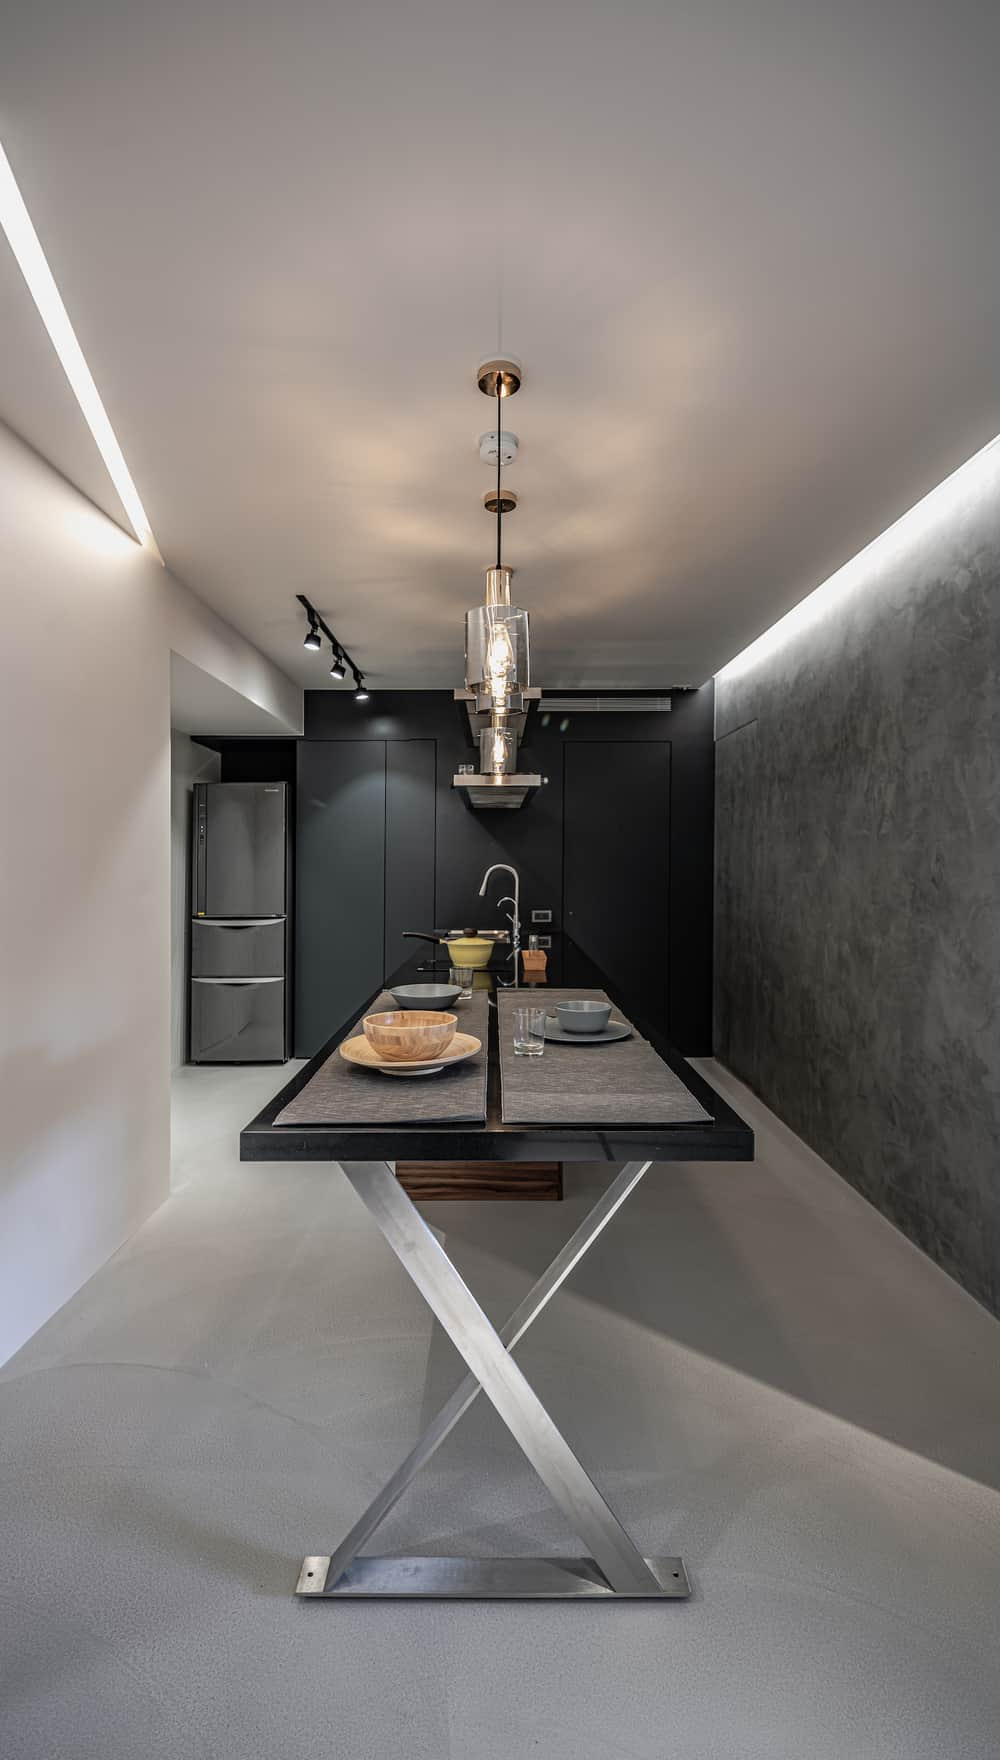 This is a view of the dining table extension of the kitchen island with a dark countertop and table top paired with silver legs and topped with pendant lights.